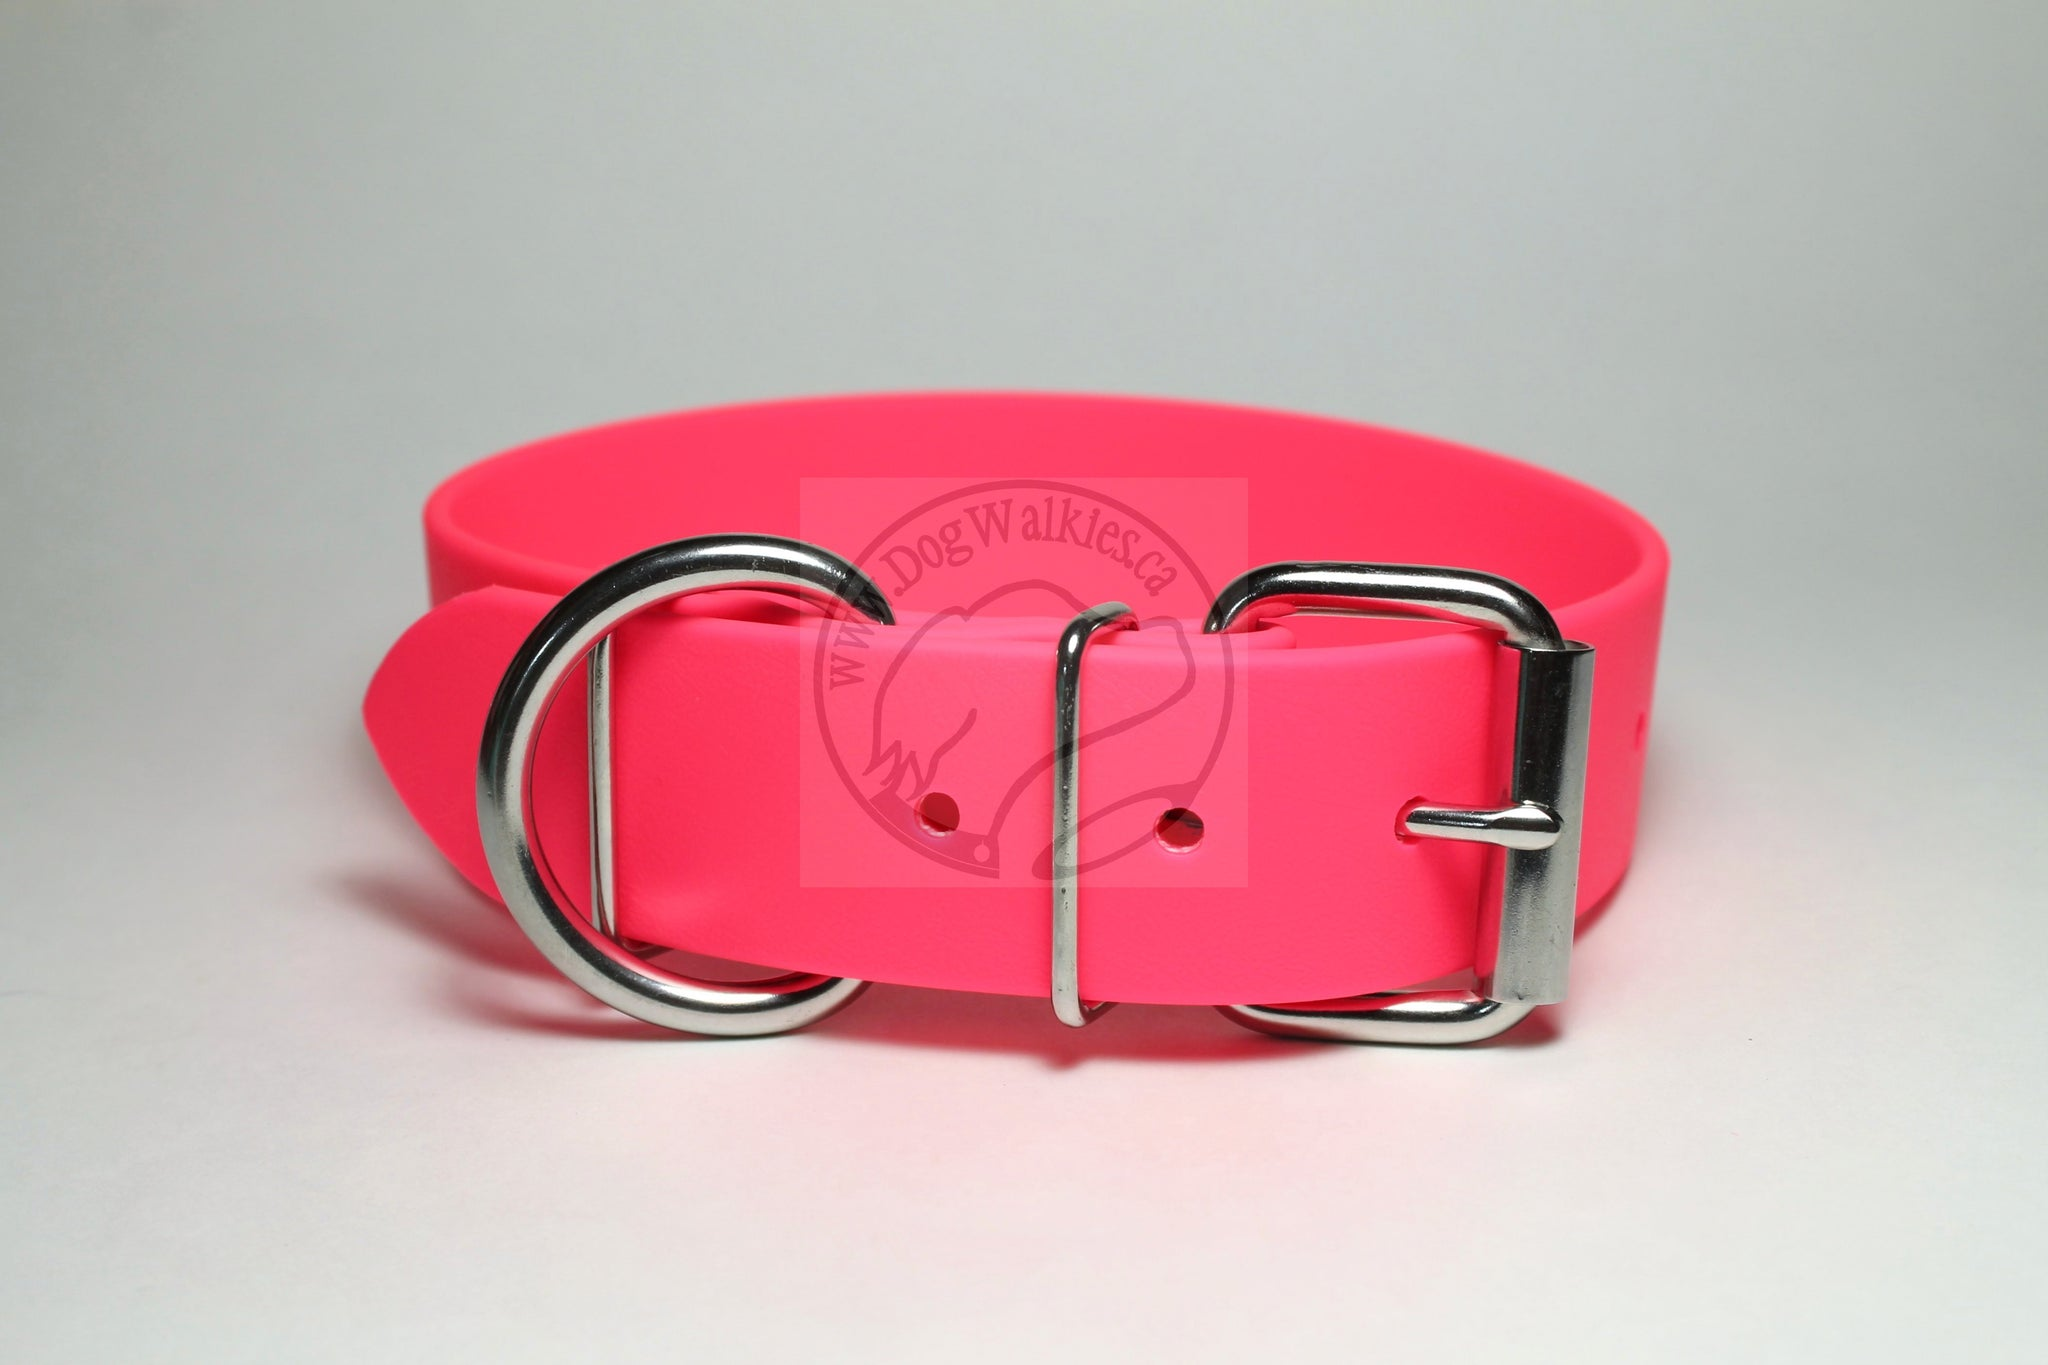 Neon Pink Biothane Dog Collar - Extra Wide - 1.5 inch (38mm) wide